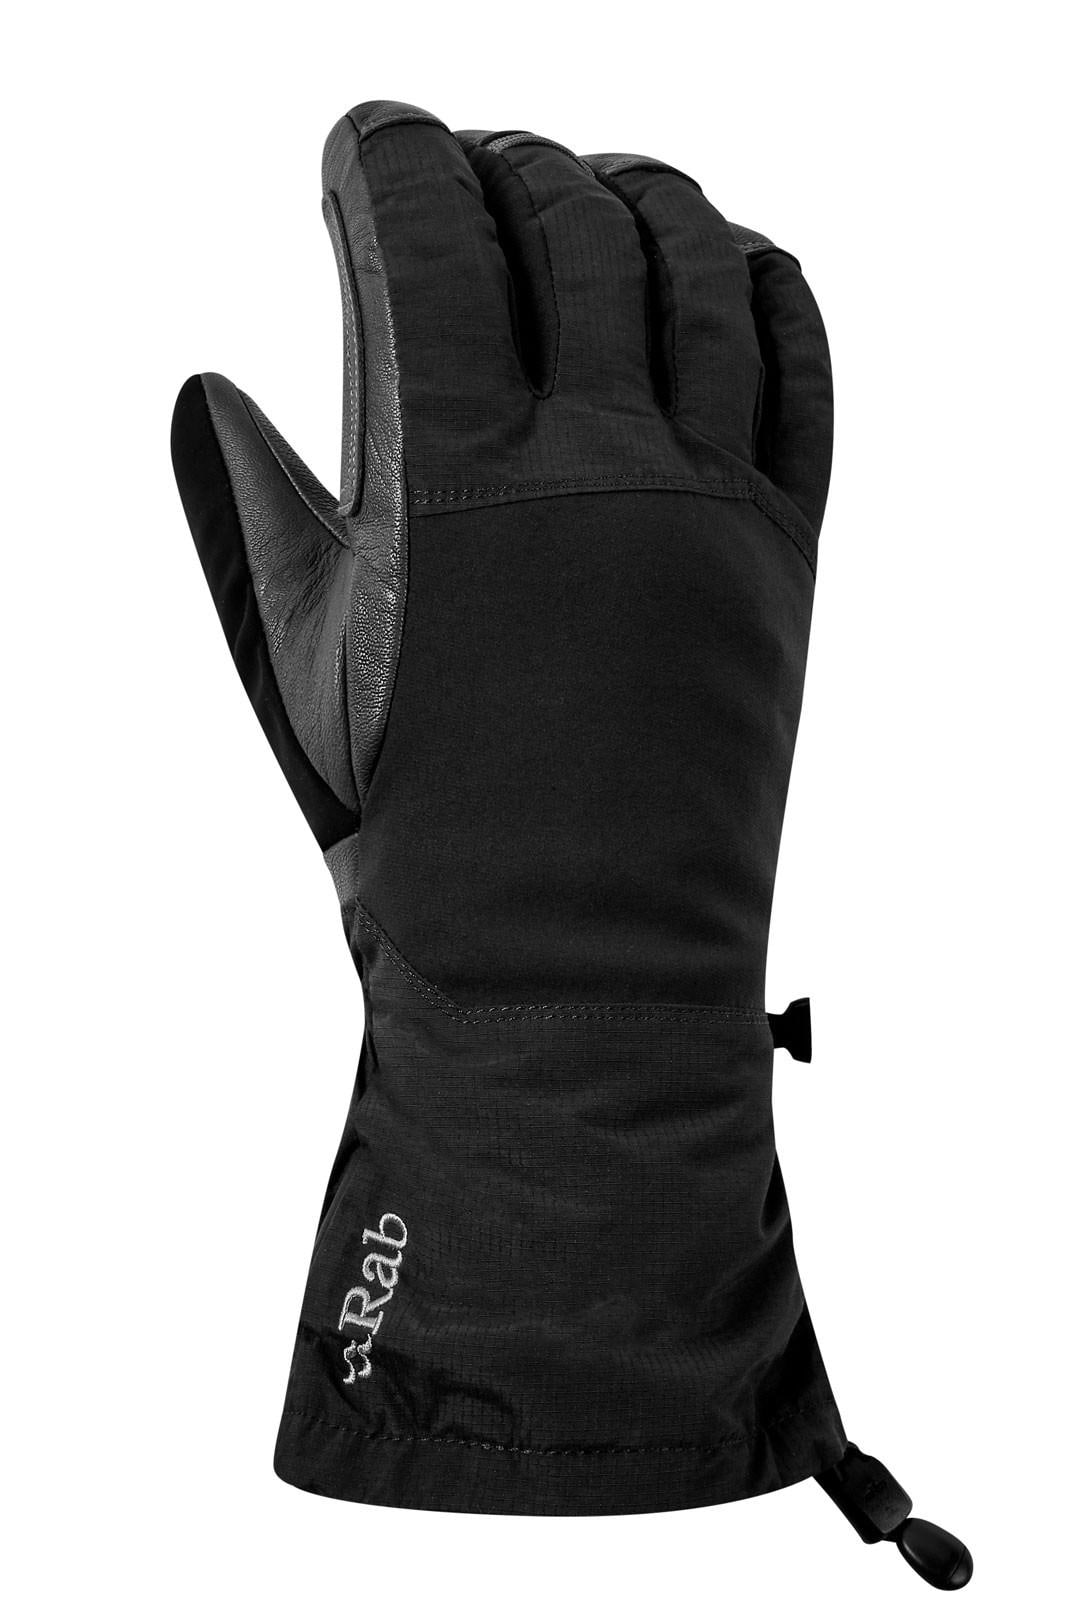 RAB Blizzard Gloves, Black